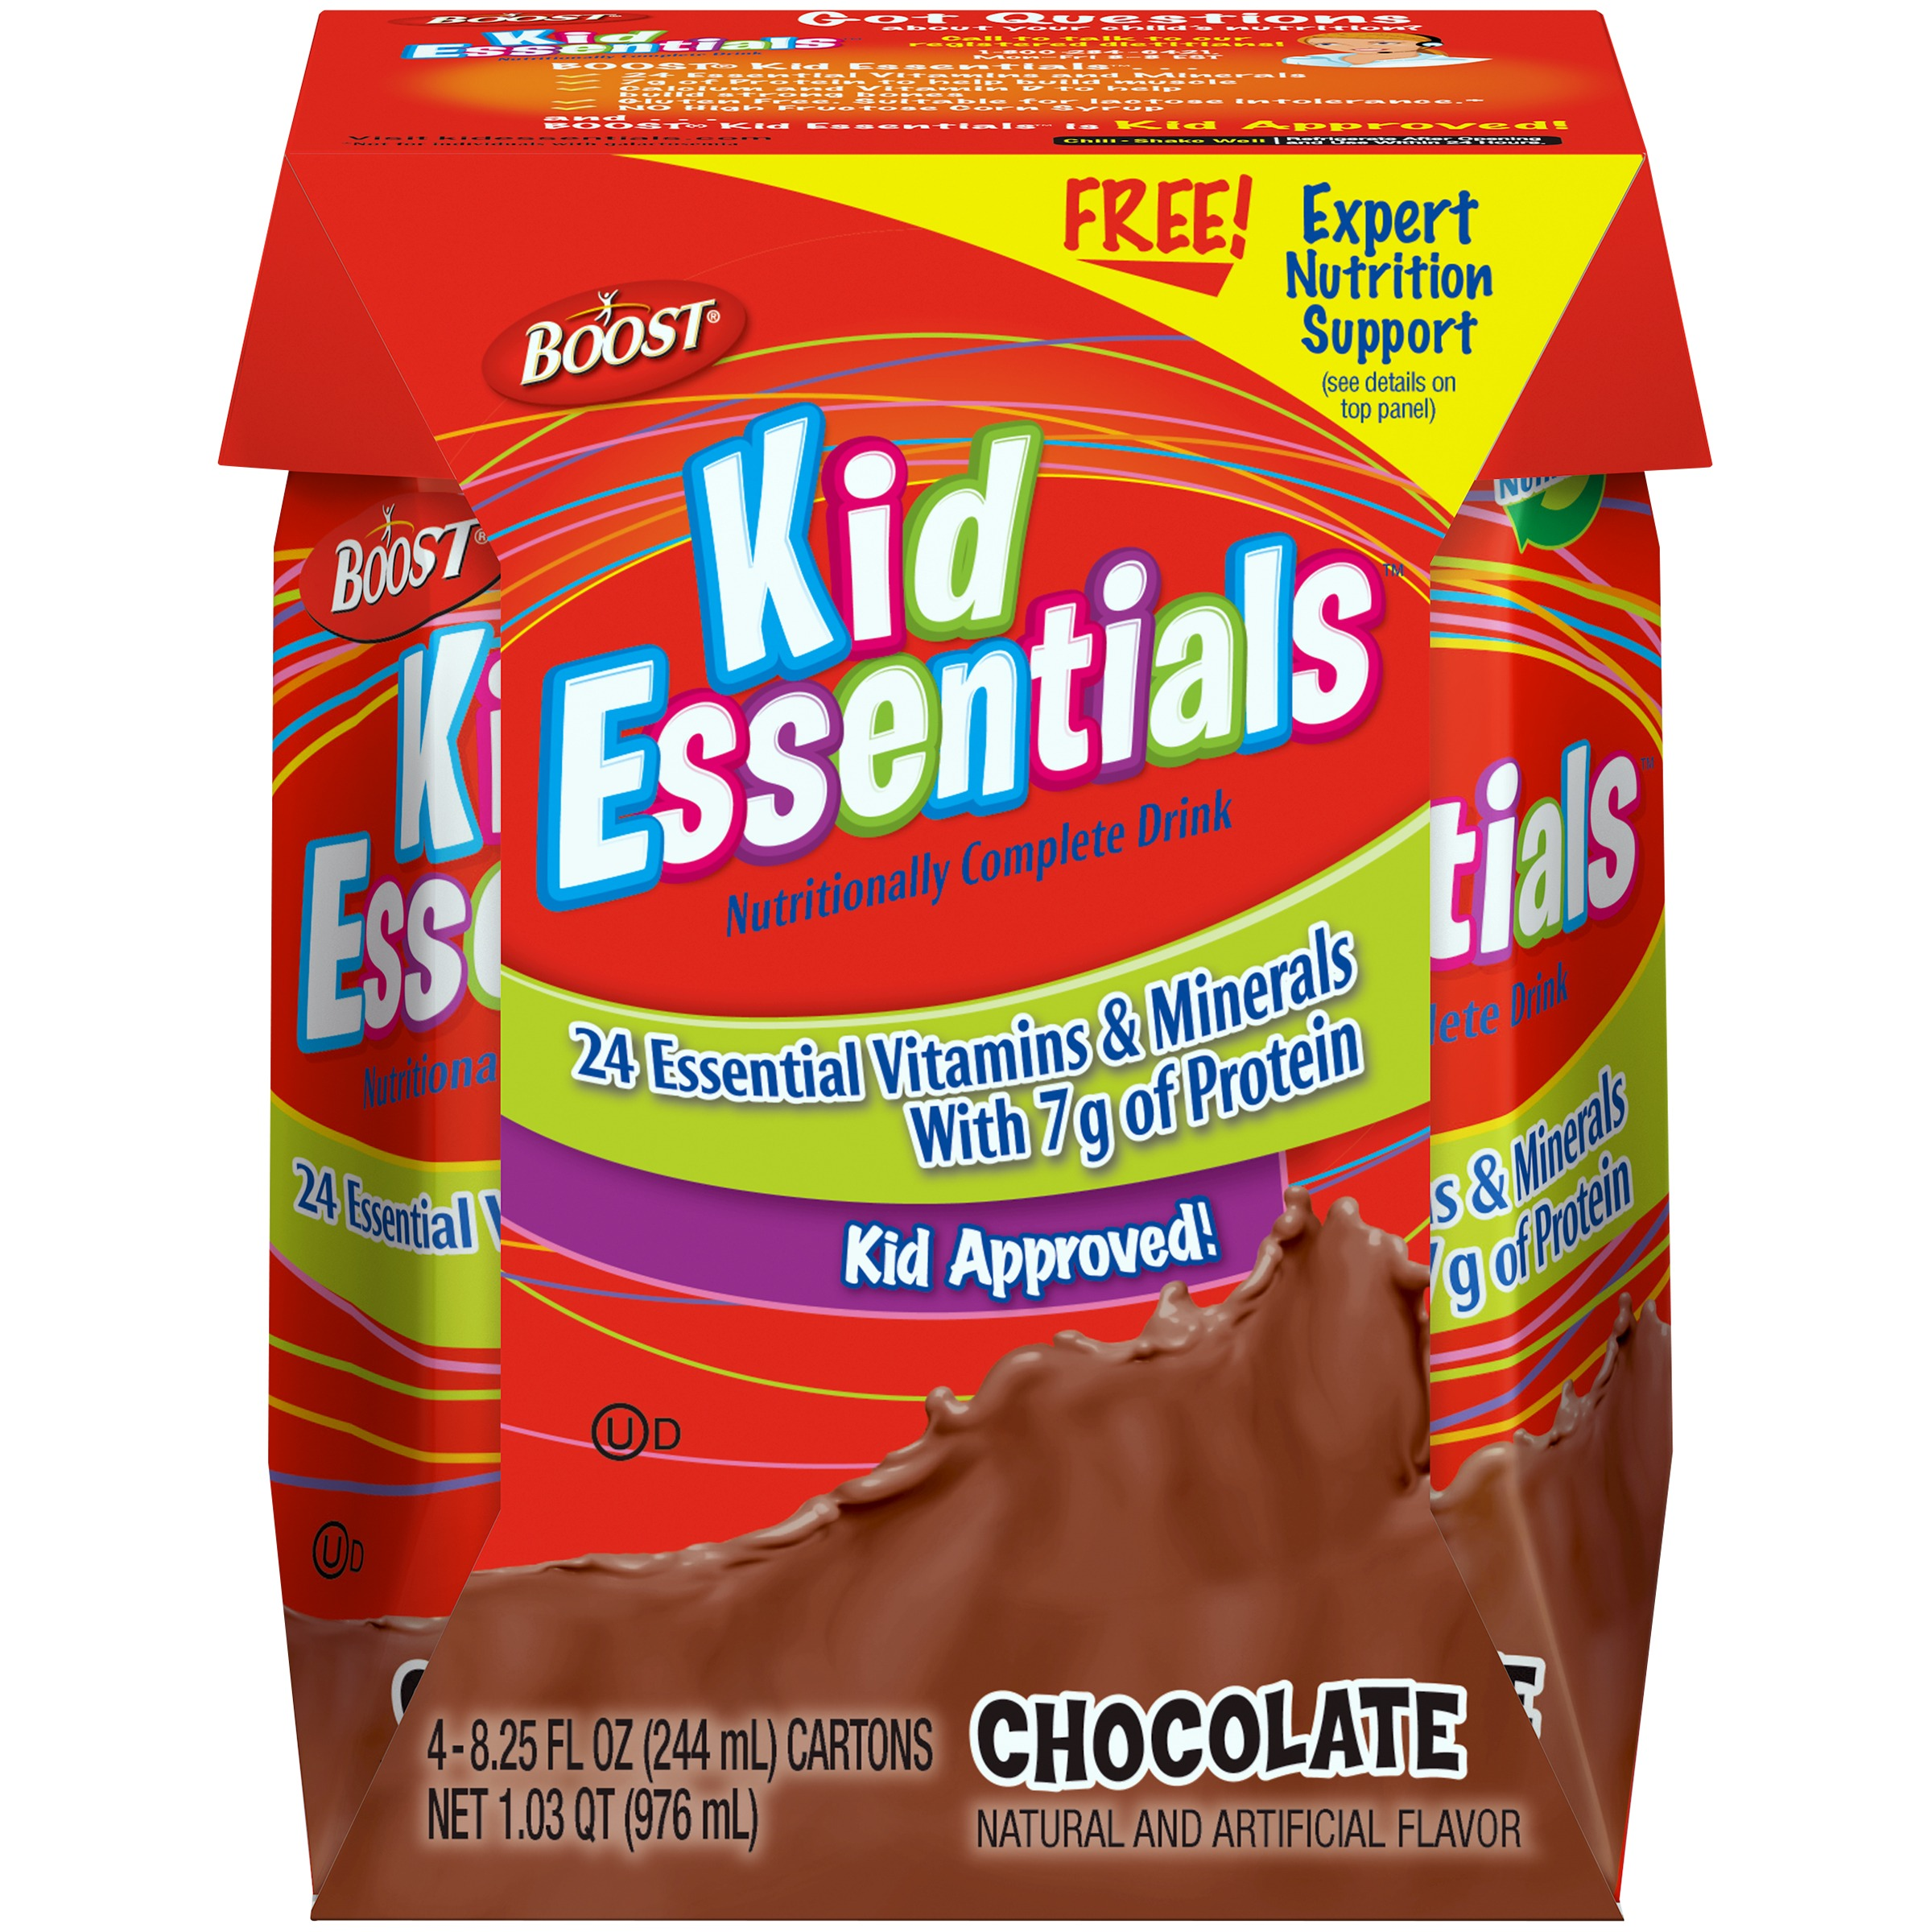 Boost Kids Essentials Chocolate Nutritionally Complete Drink, 8.25 Fl oz, 4 Ct